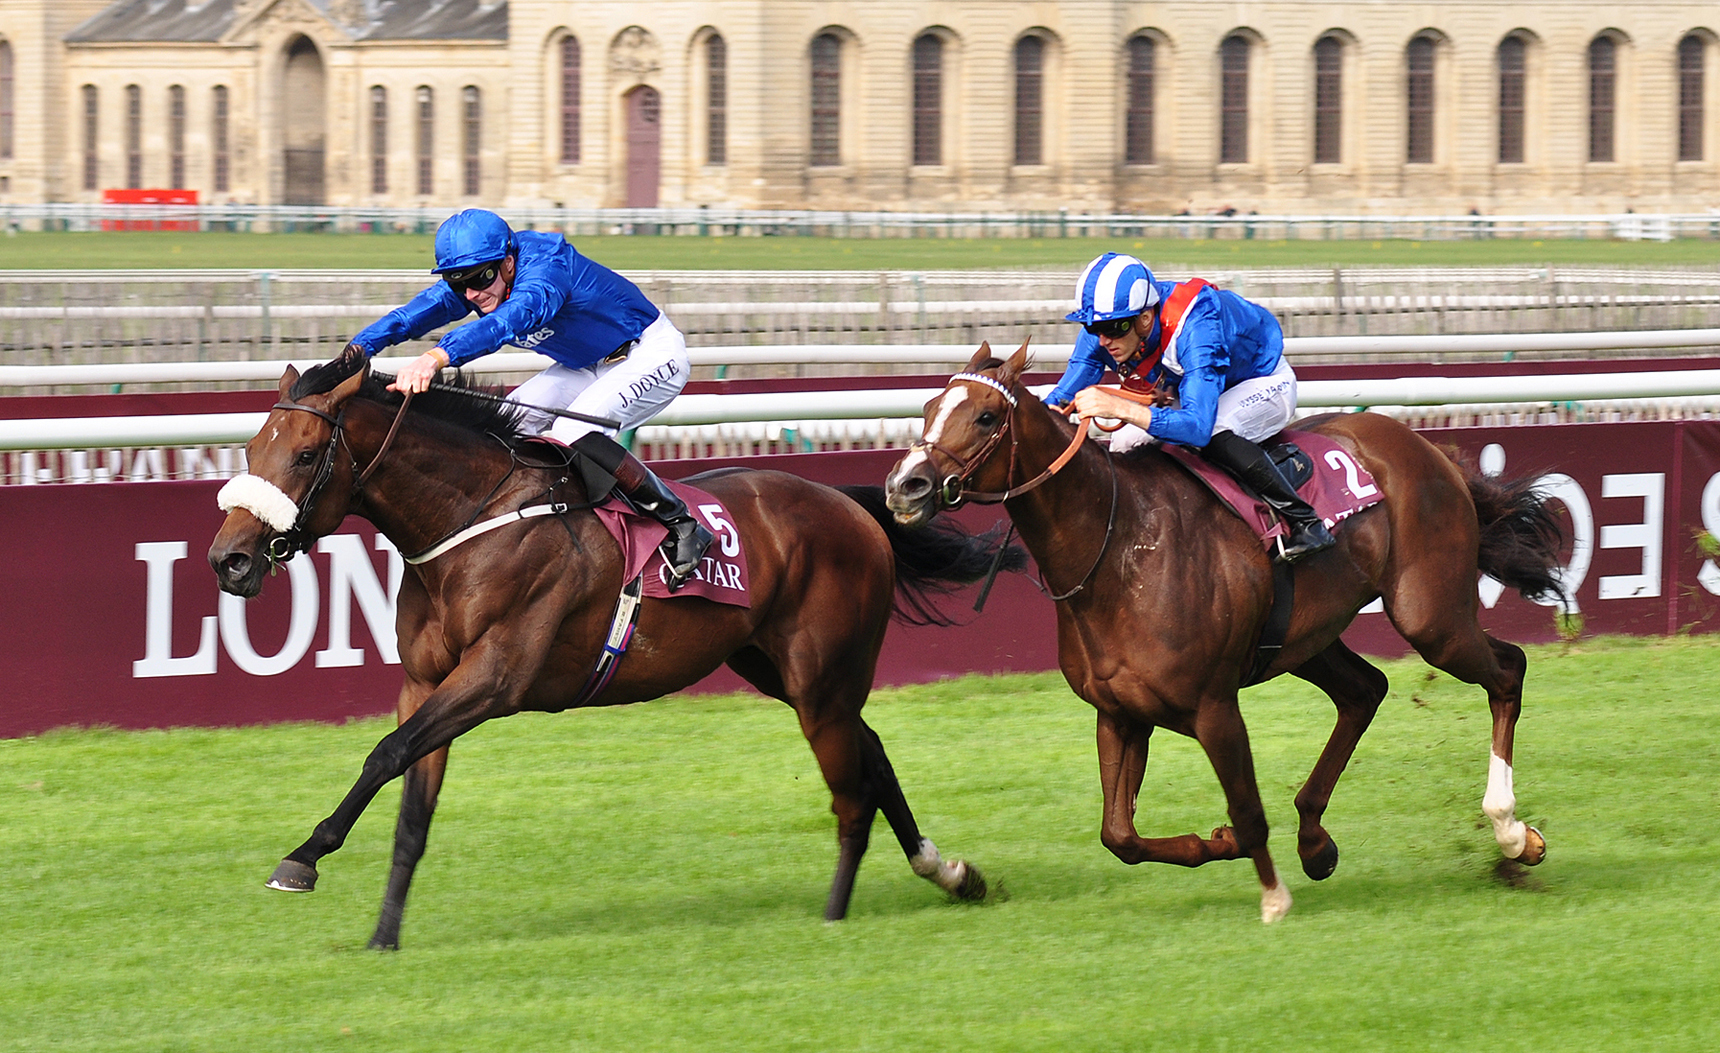 STABLE STAR: Richard Fahey's Ribchester, ridden by James Doyle, beats Taareef to win the Qatar Prix de Moulin Longchamp at Chantilly in September to gain his fourth Group 1 victory and third in 2017